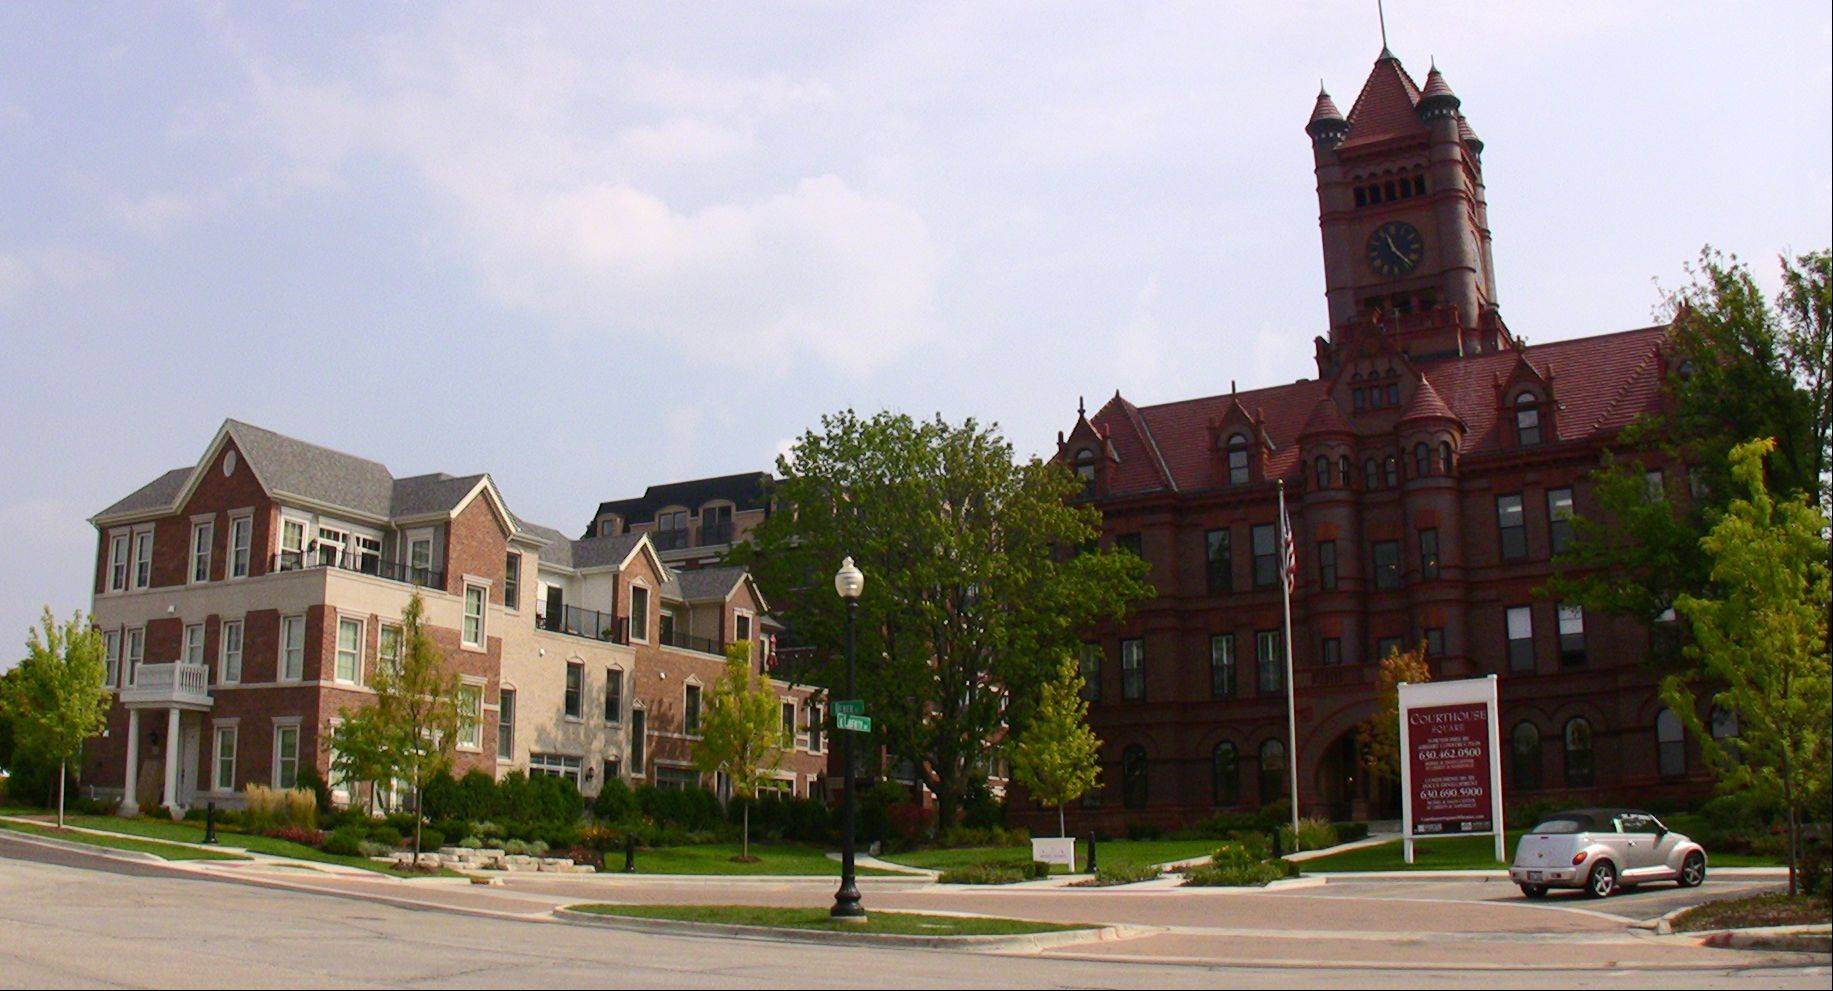 A plan to add senior housing to the Courthouse Square project in downtown Wheaton is sparking heated debate and a lawsuit by some residents.